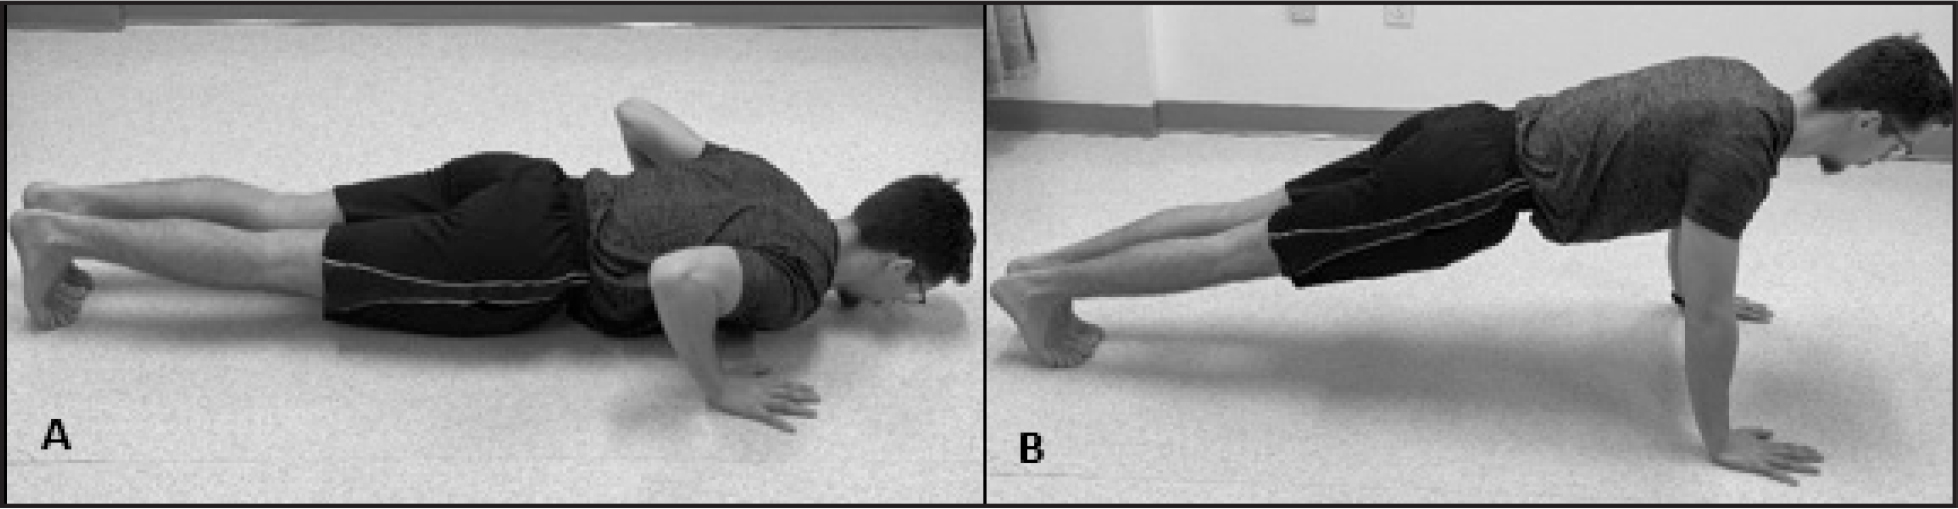 Push-Up sub-test: (A) start position and (B) end position.